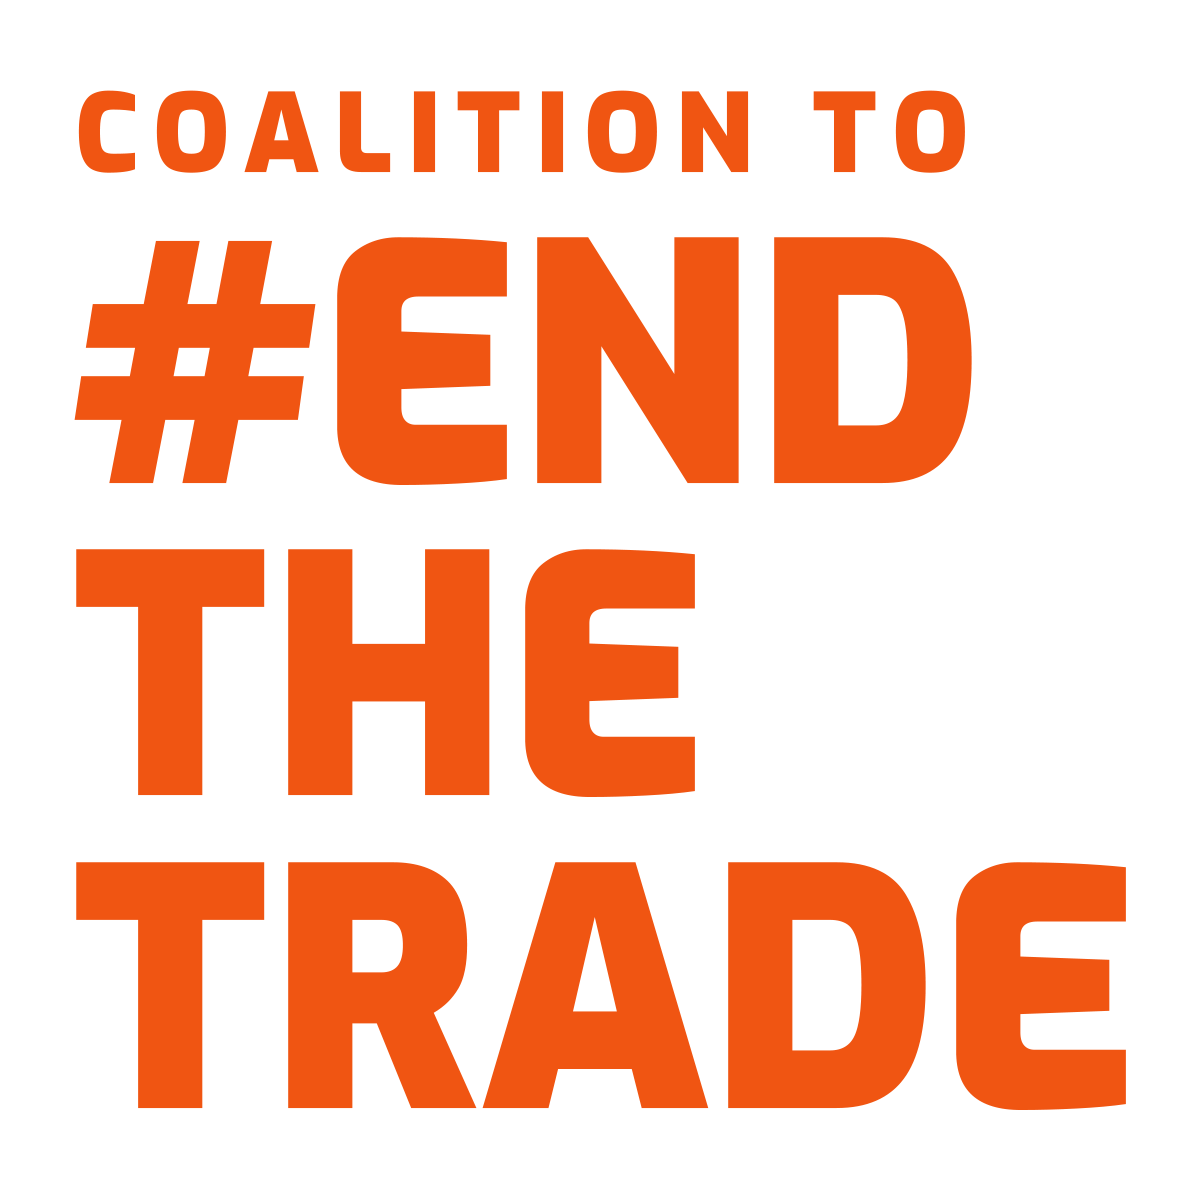 Coalition to End the Trade